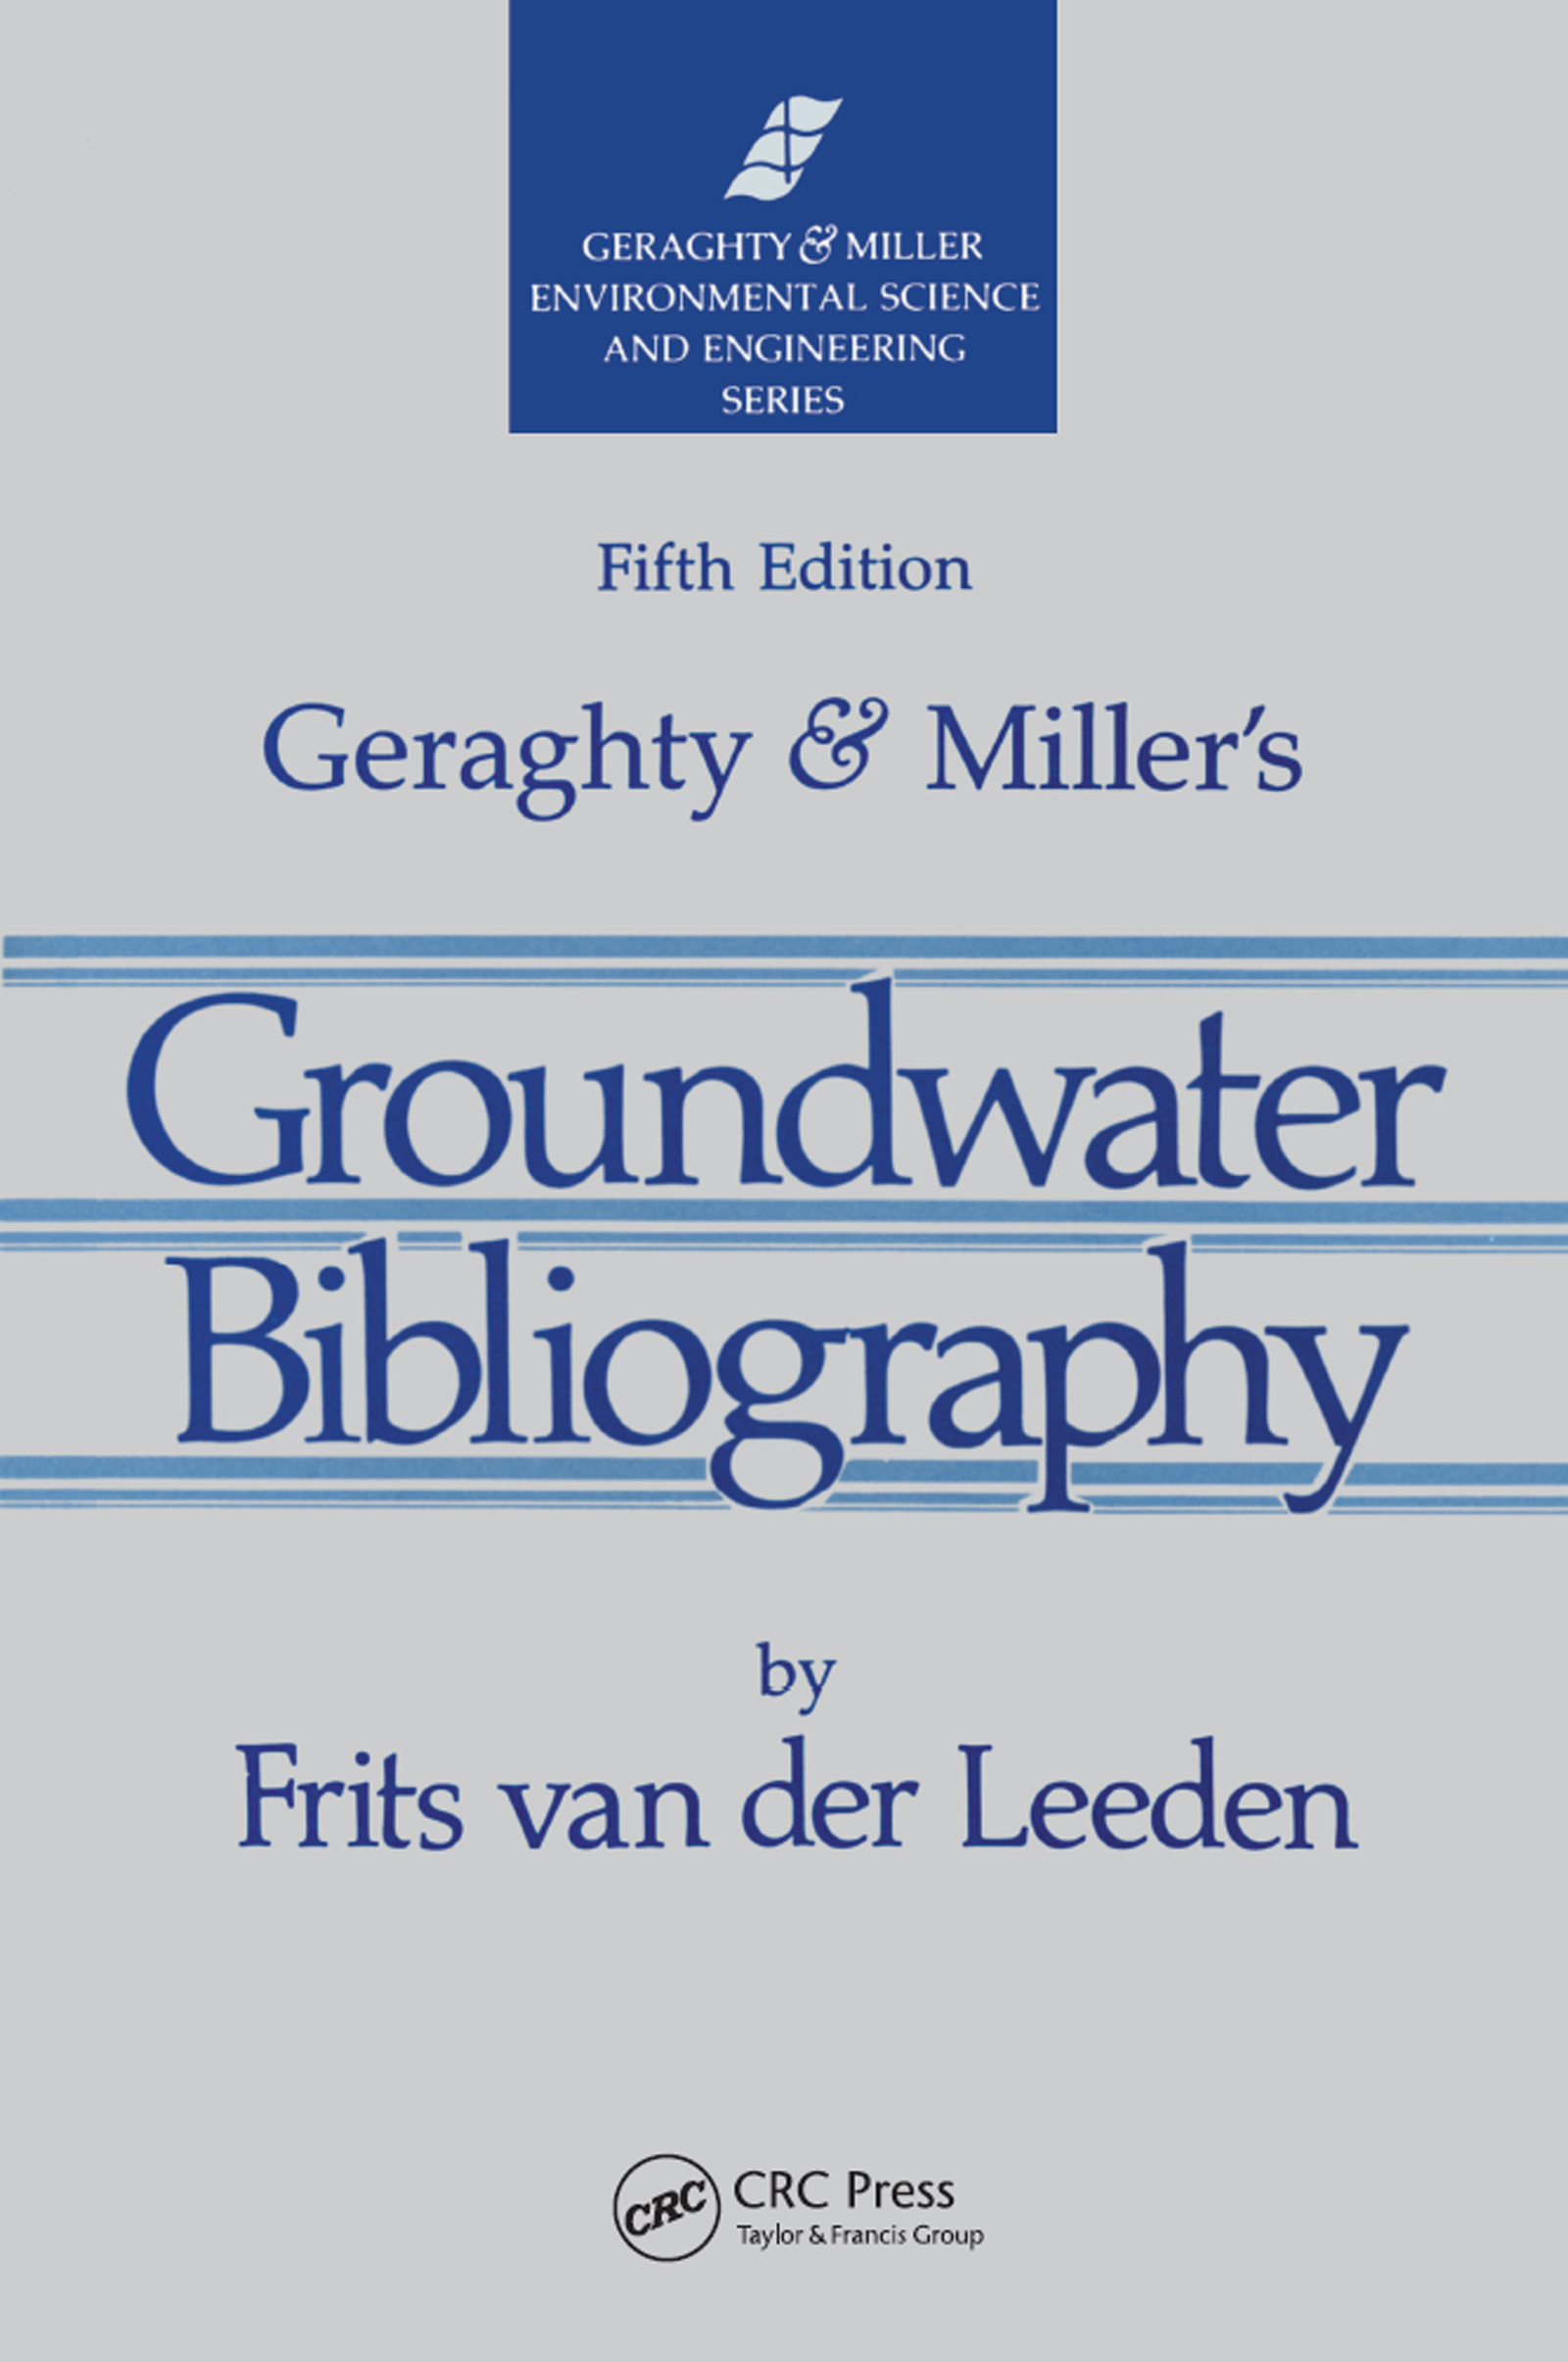 Geraghty & Miller's Groundwater Bibliography, Fifth Edition